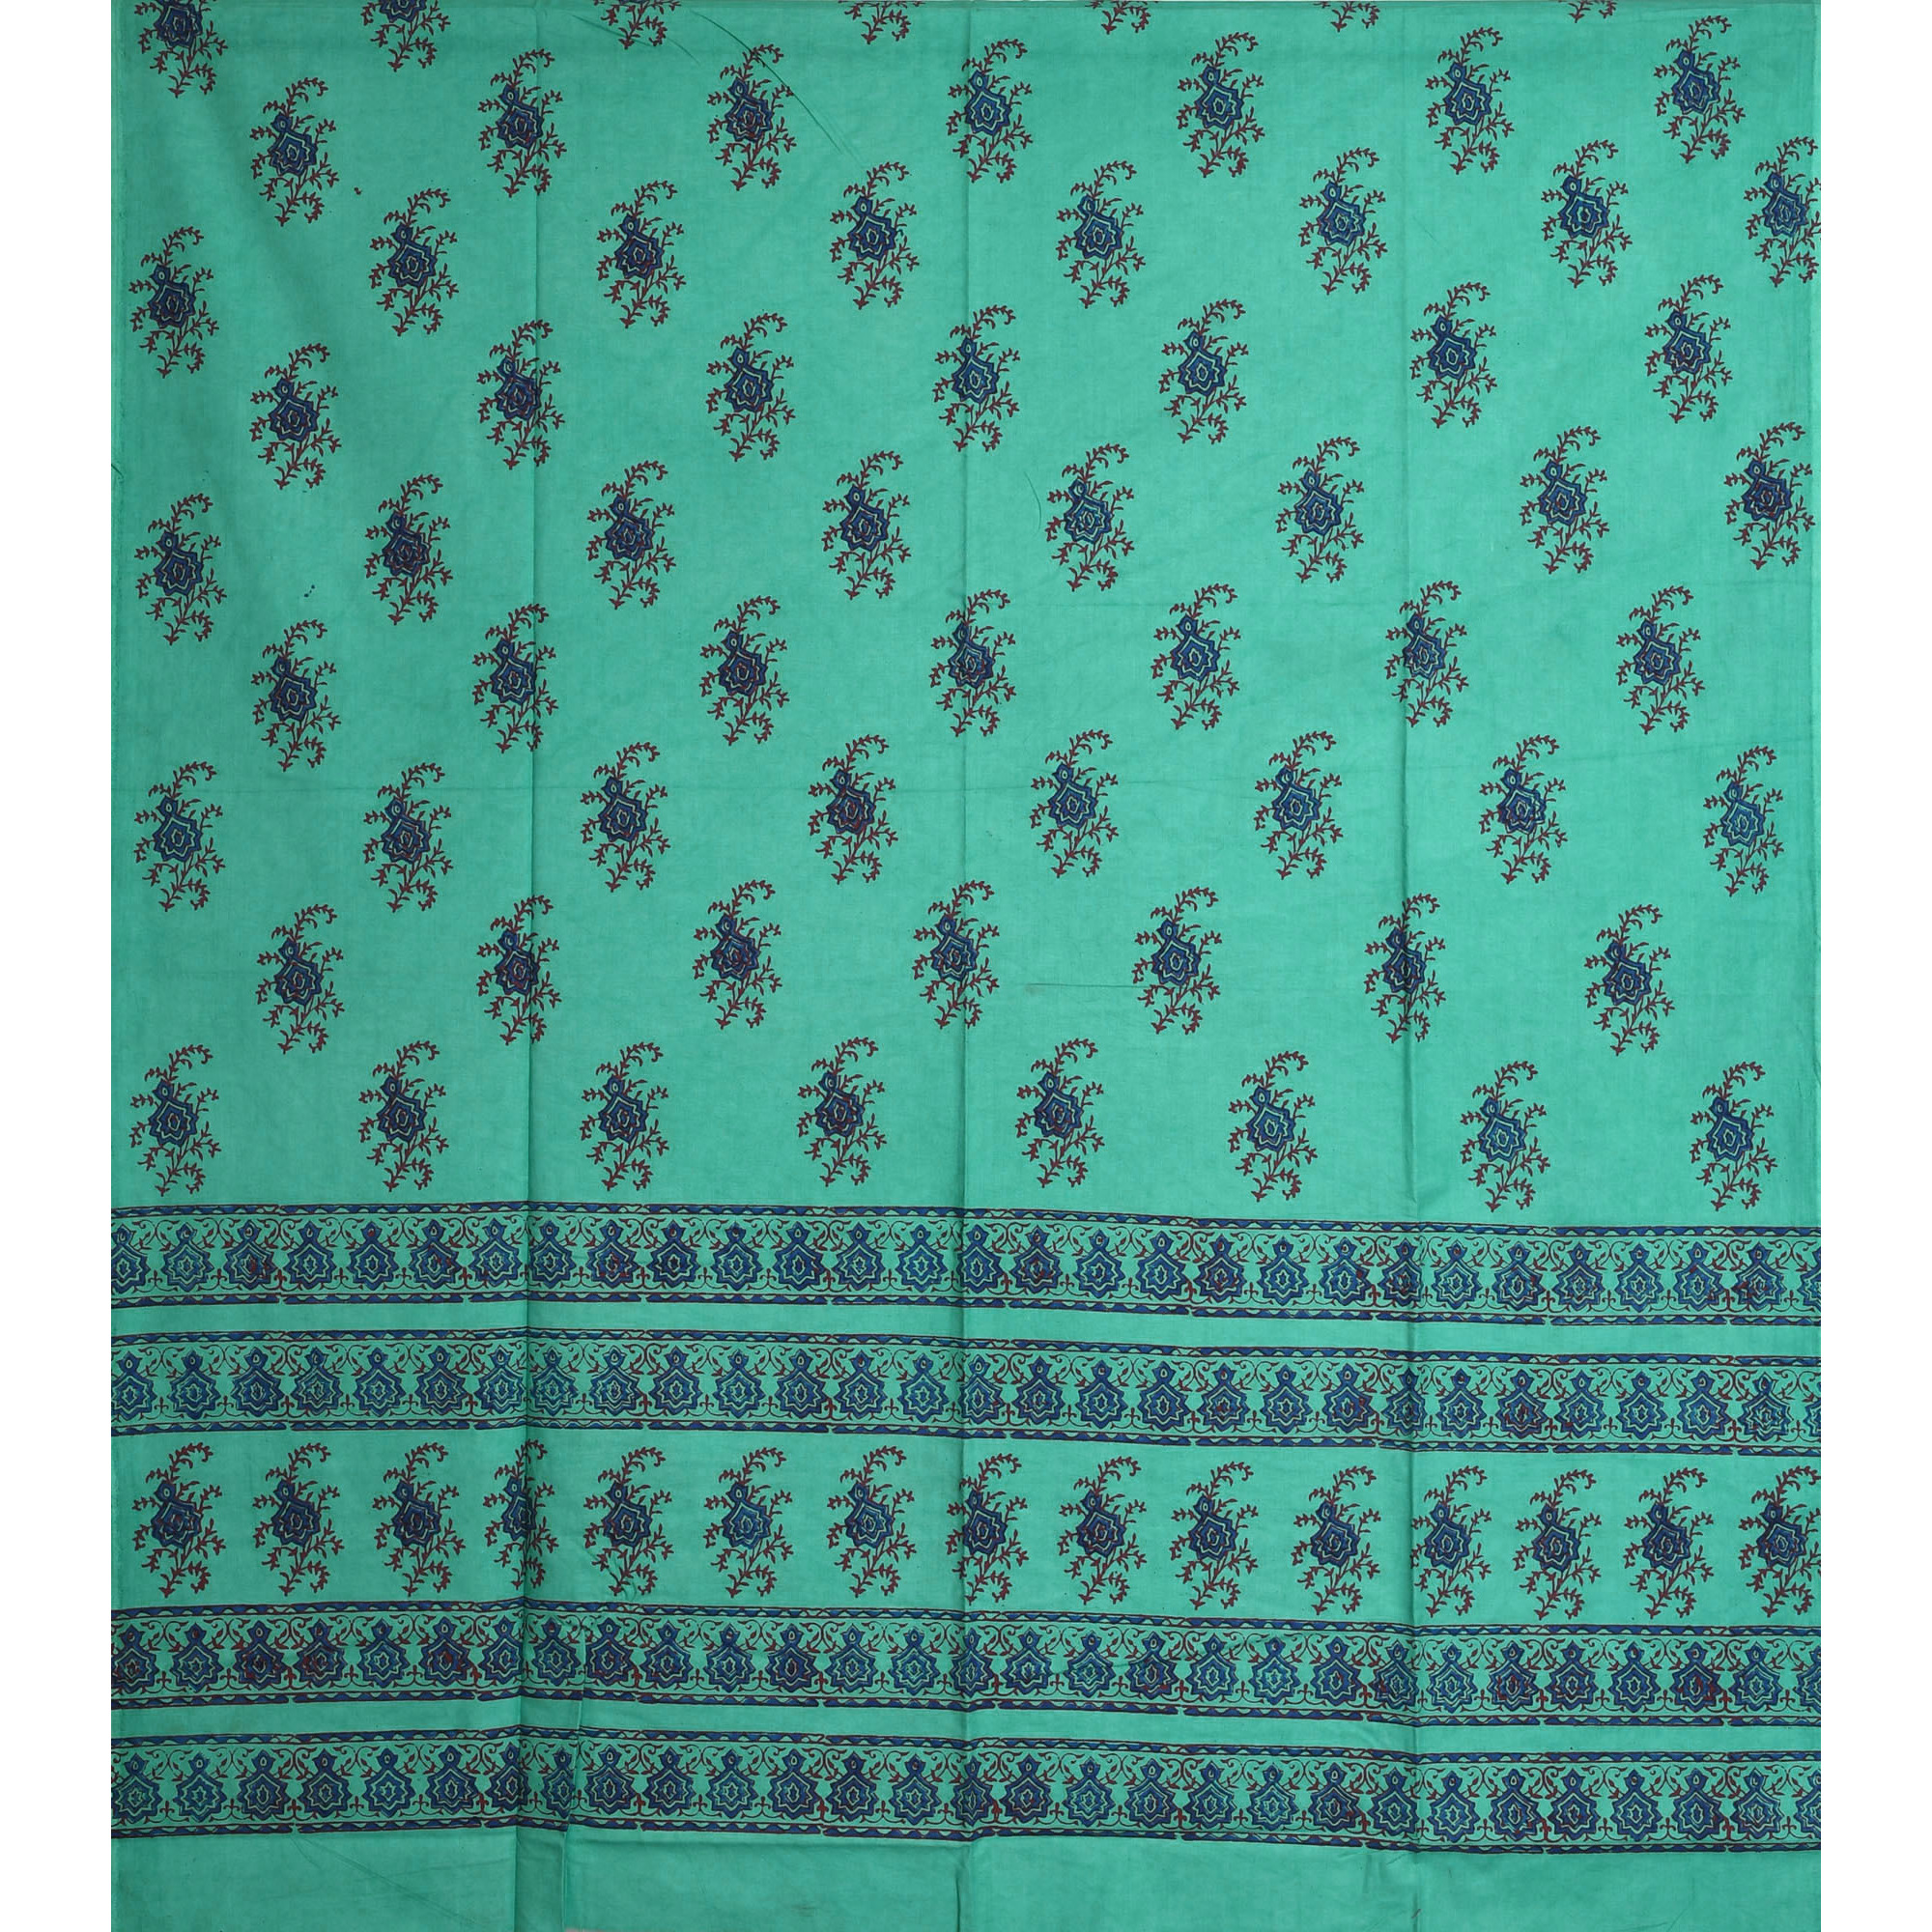 Turquoise-Green Curtain with Printed Floral Motifs